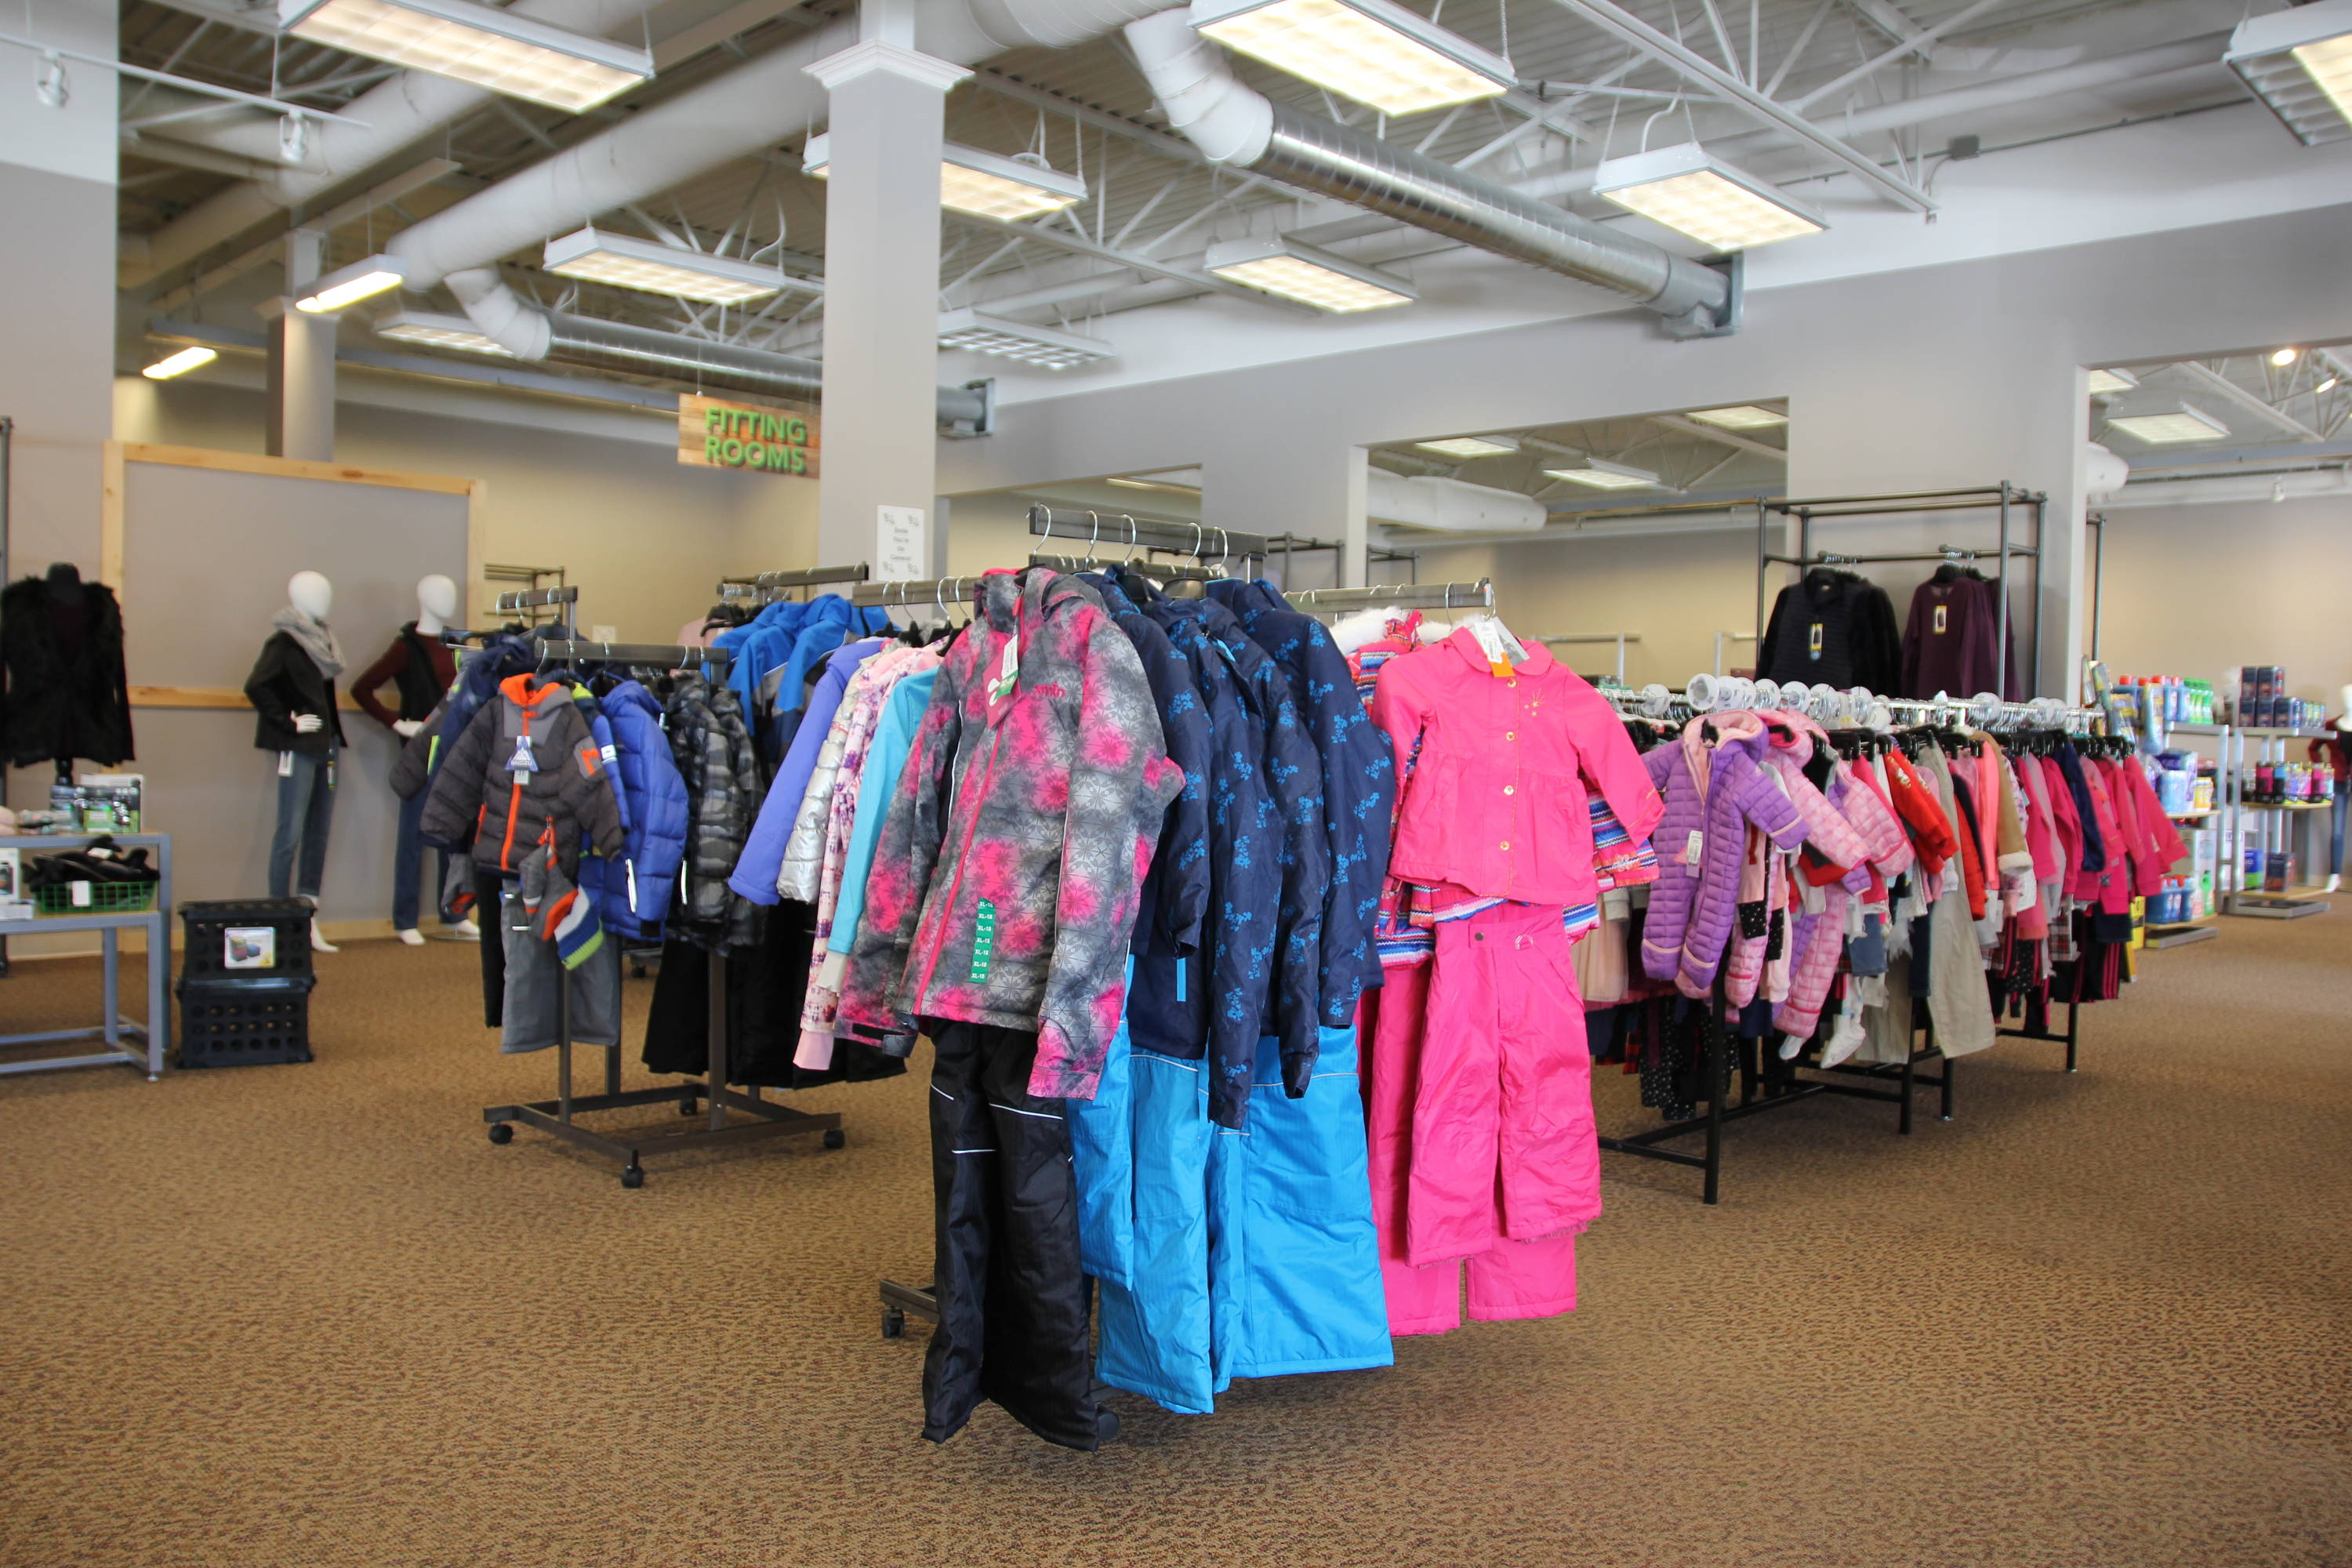 Children's Winter Clothing, Children's Clothing, Winter Clothing